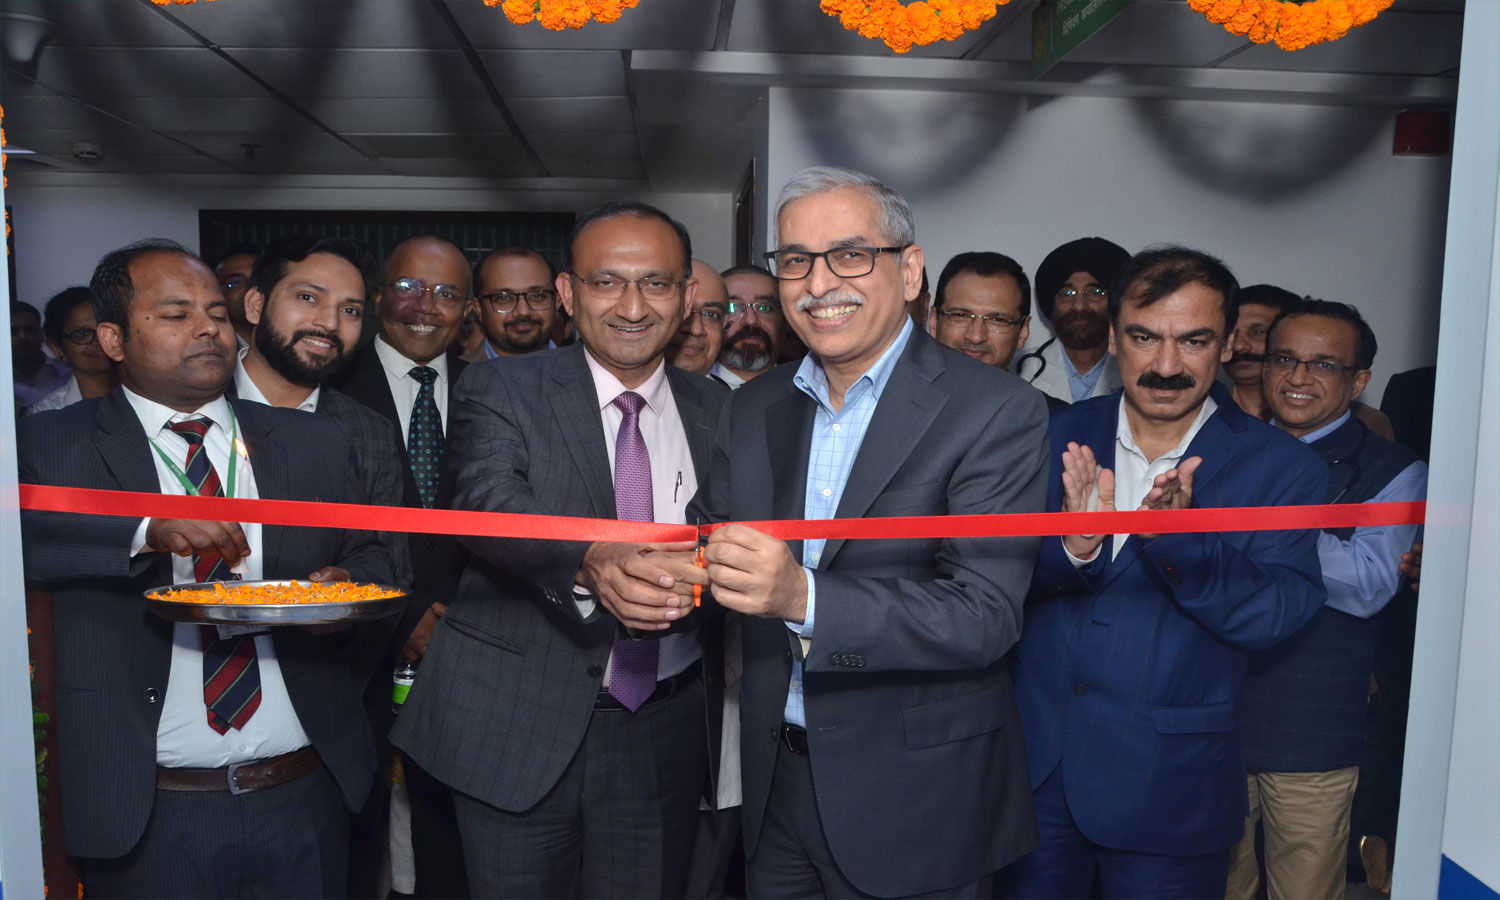 Fortis Vasant Kunj opens 16 bedded dialysis center in association with Fresenius Medical Care